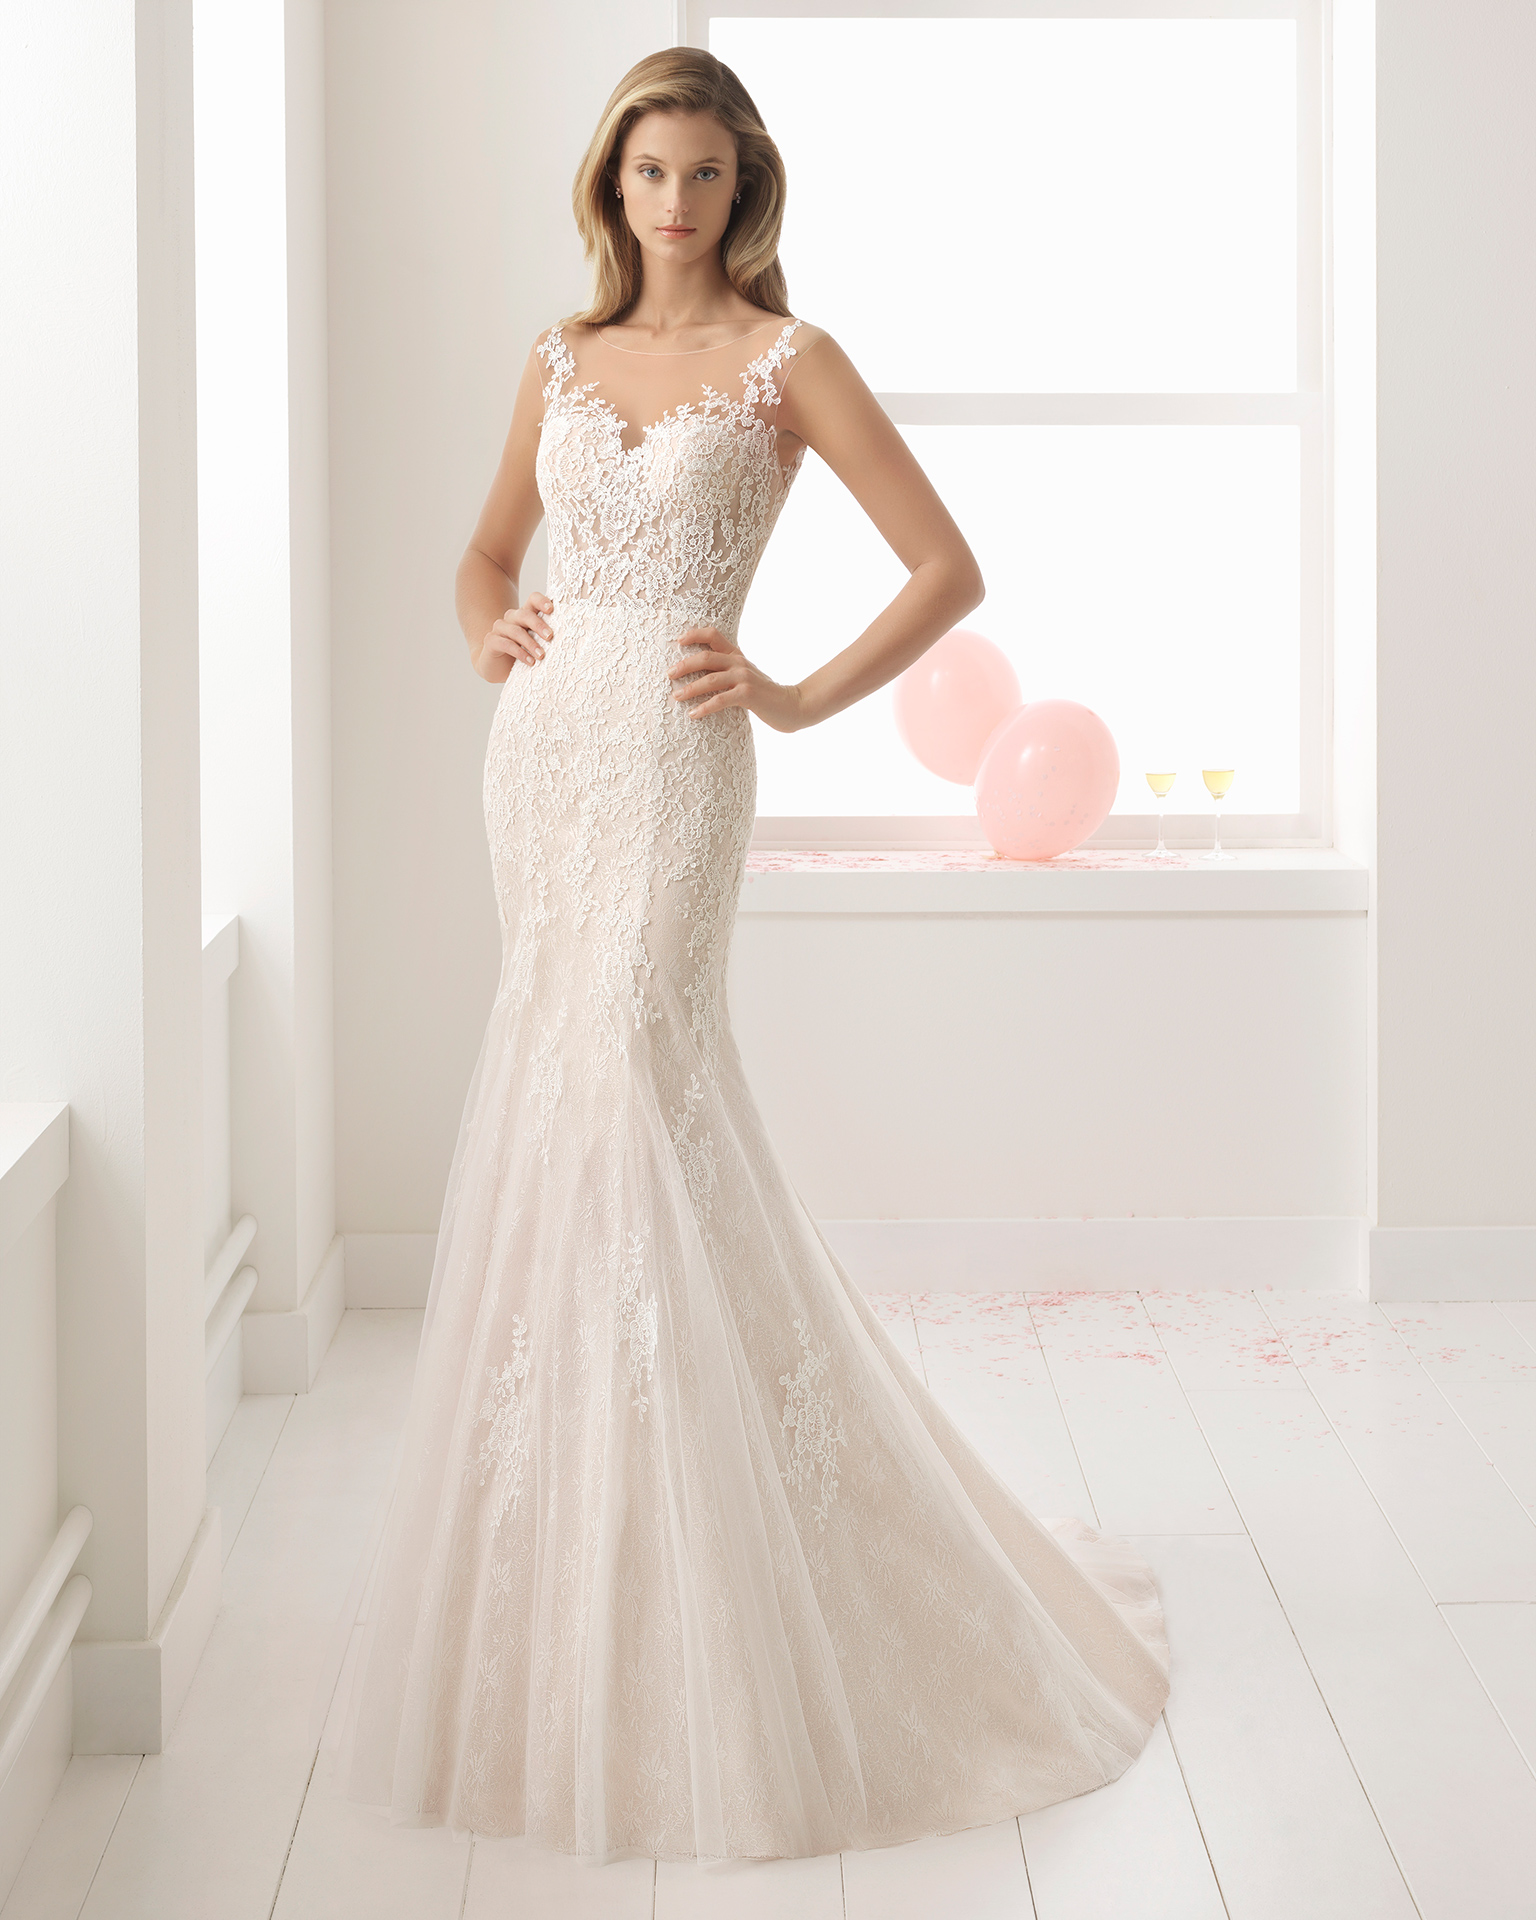 Romantic-style sheer lace wedding dress with illusion neckline, in rose and natural.